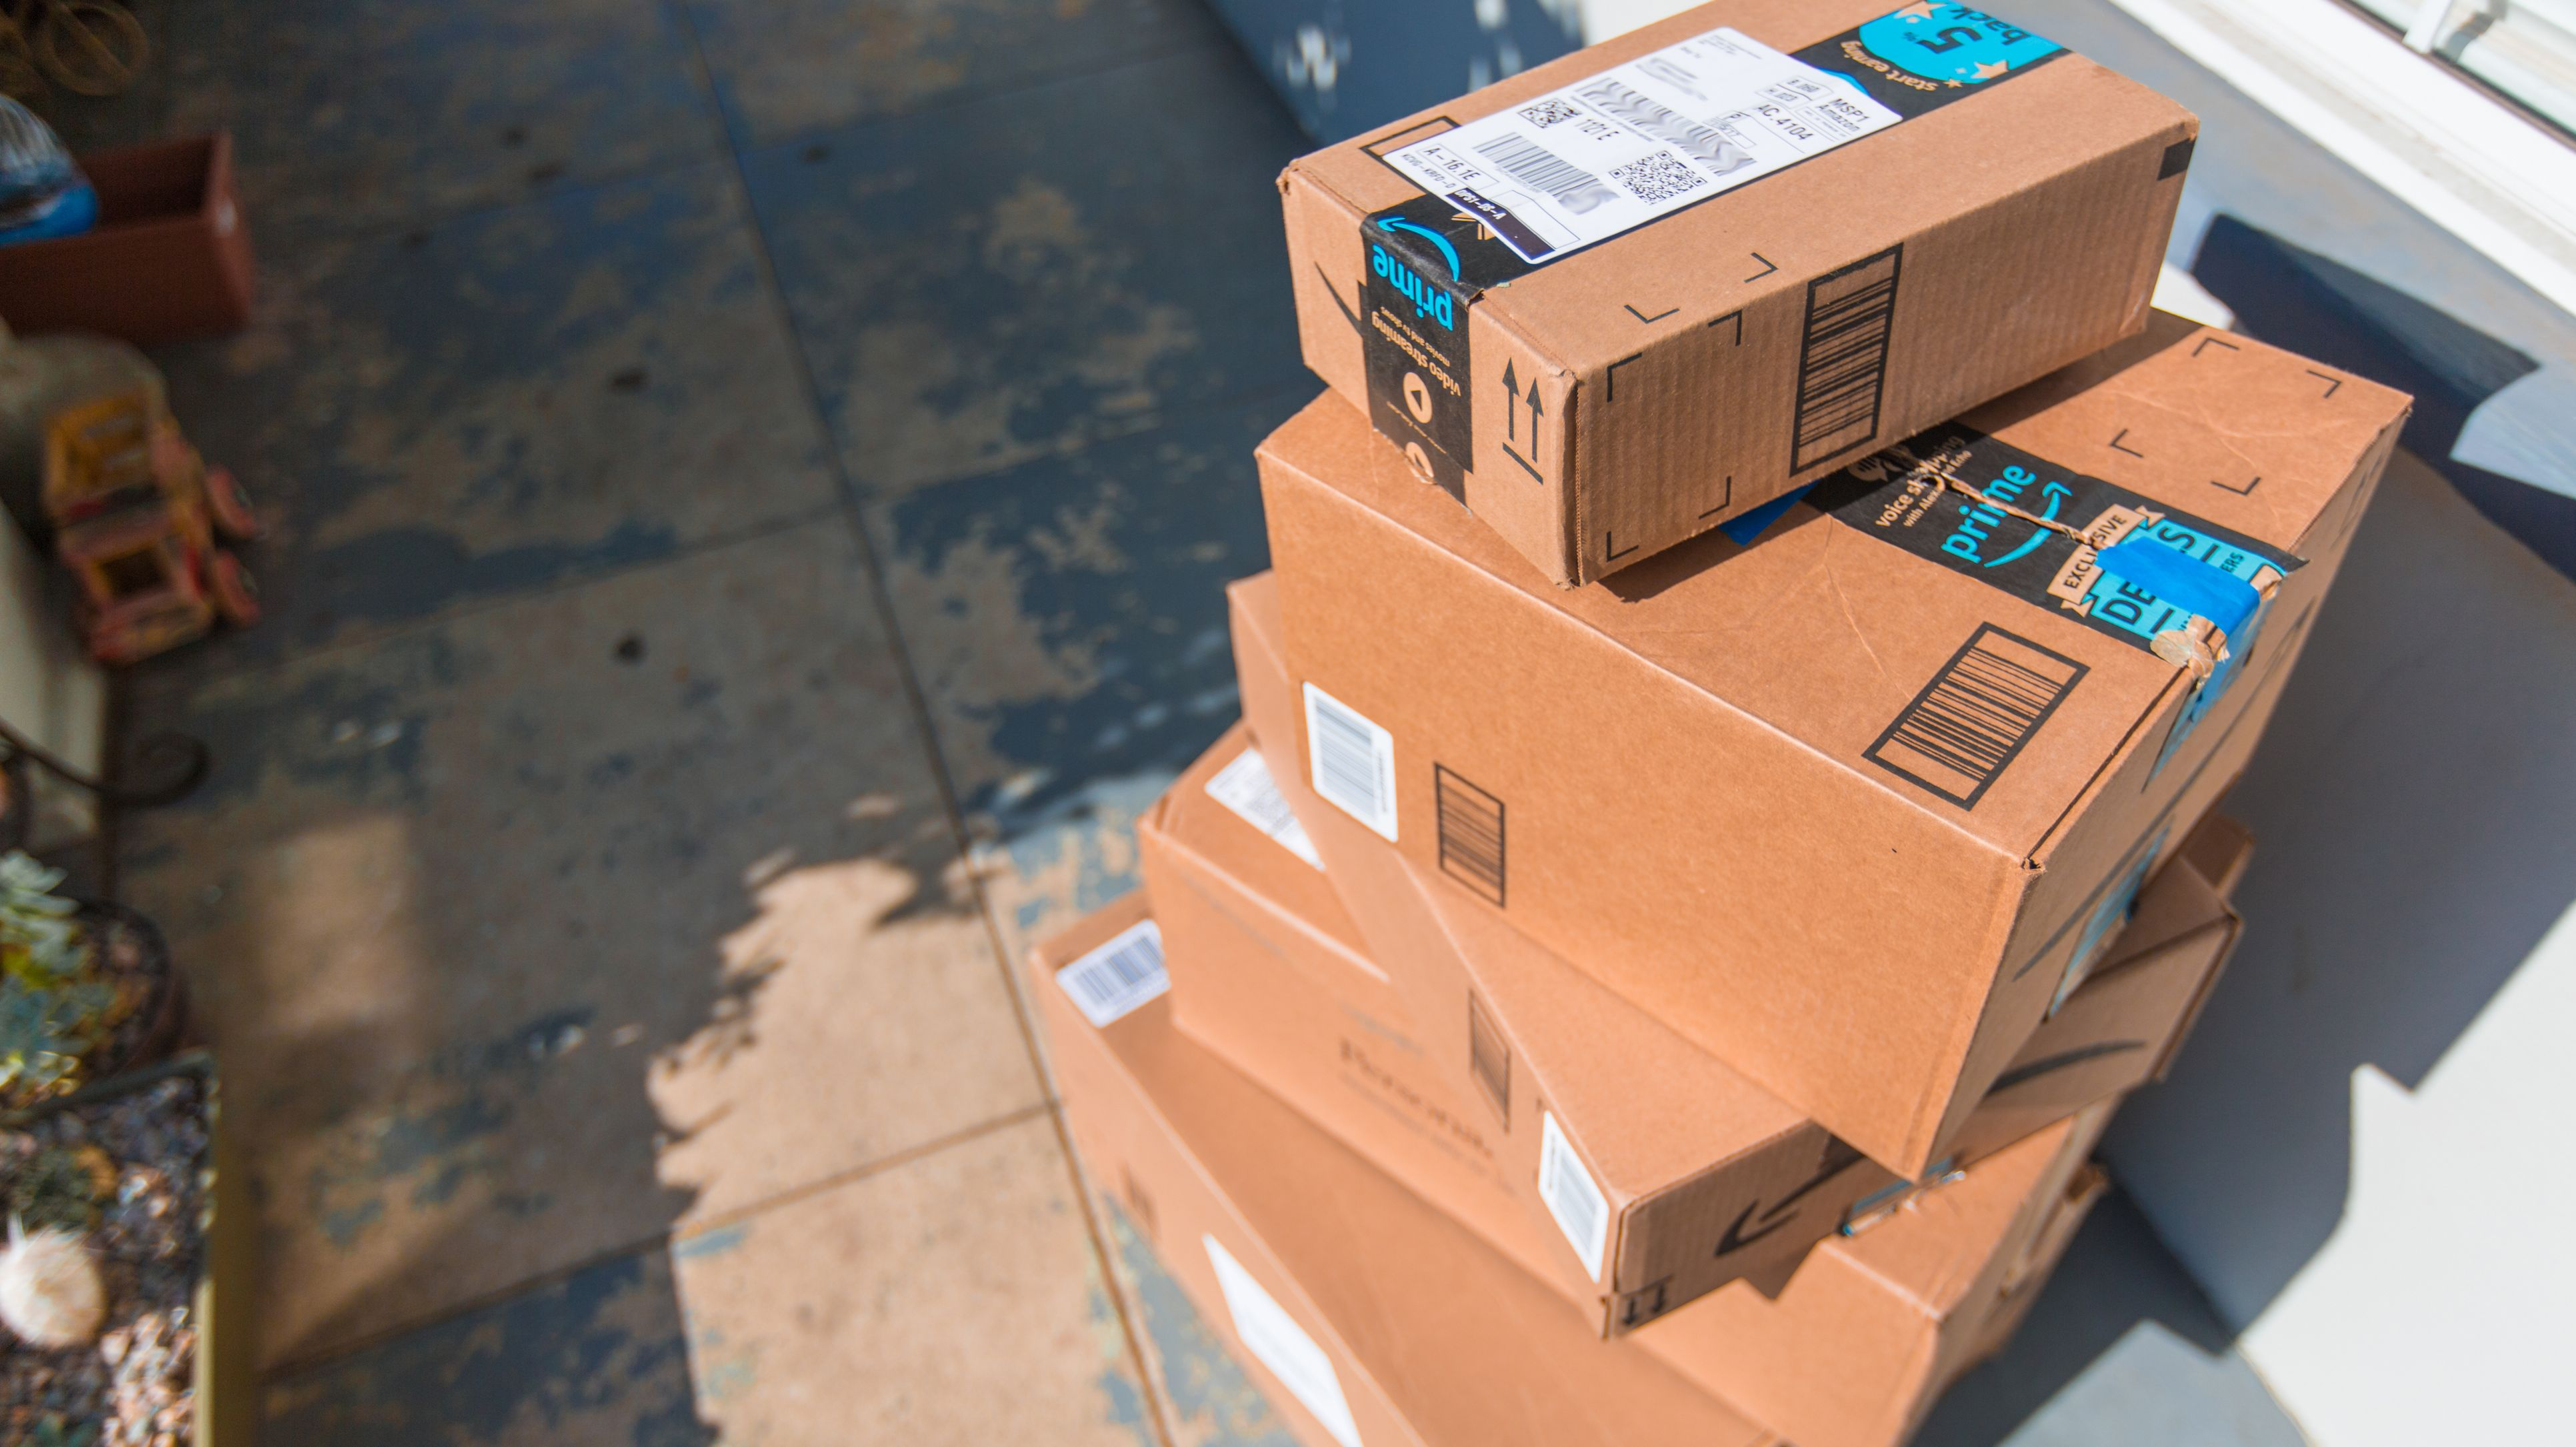 Beware of Amazon Packages You Didn't Order—It Could Be a Scam